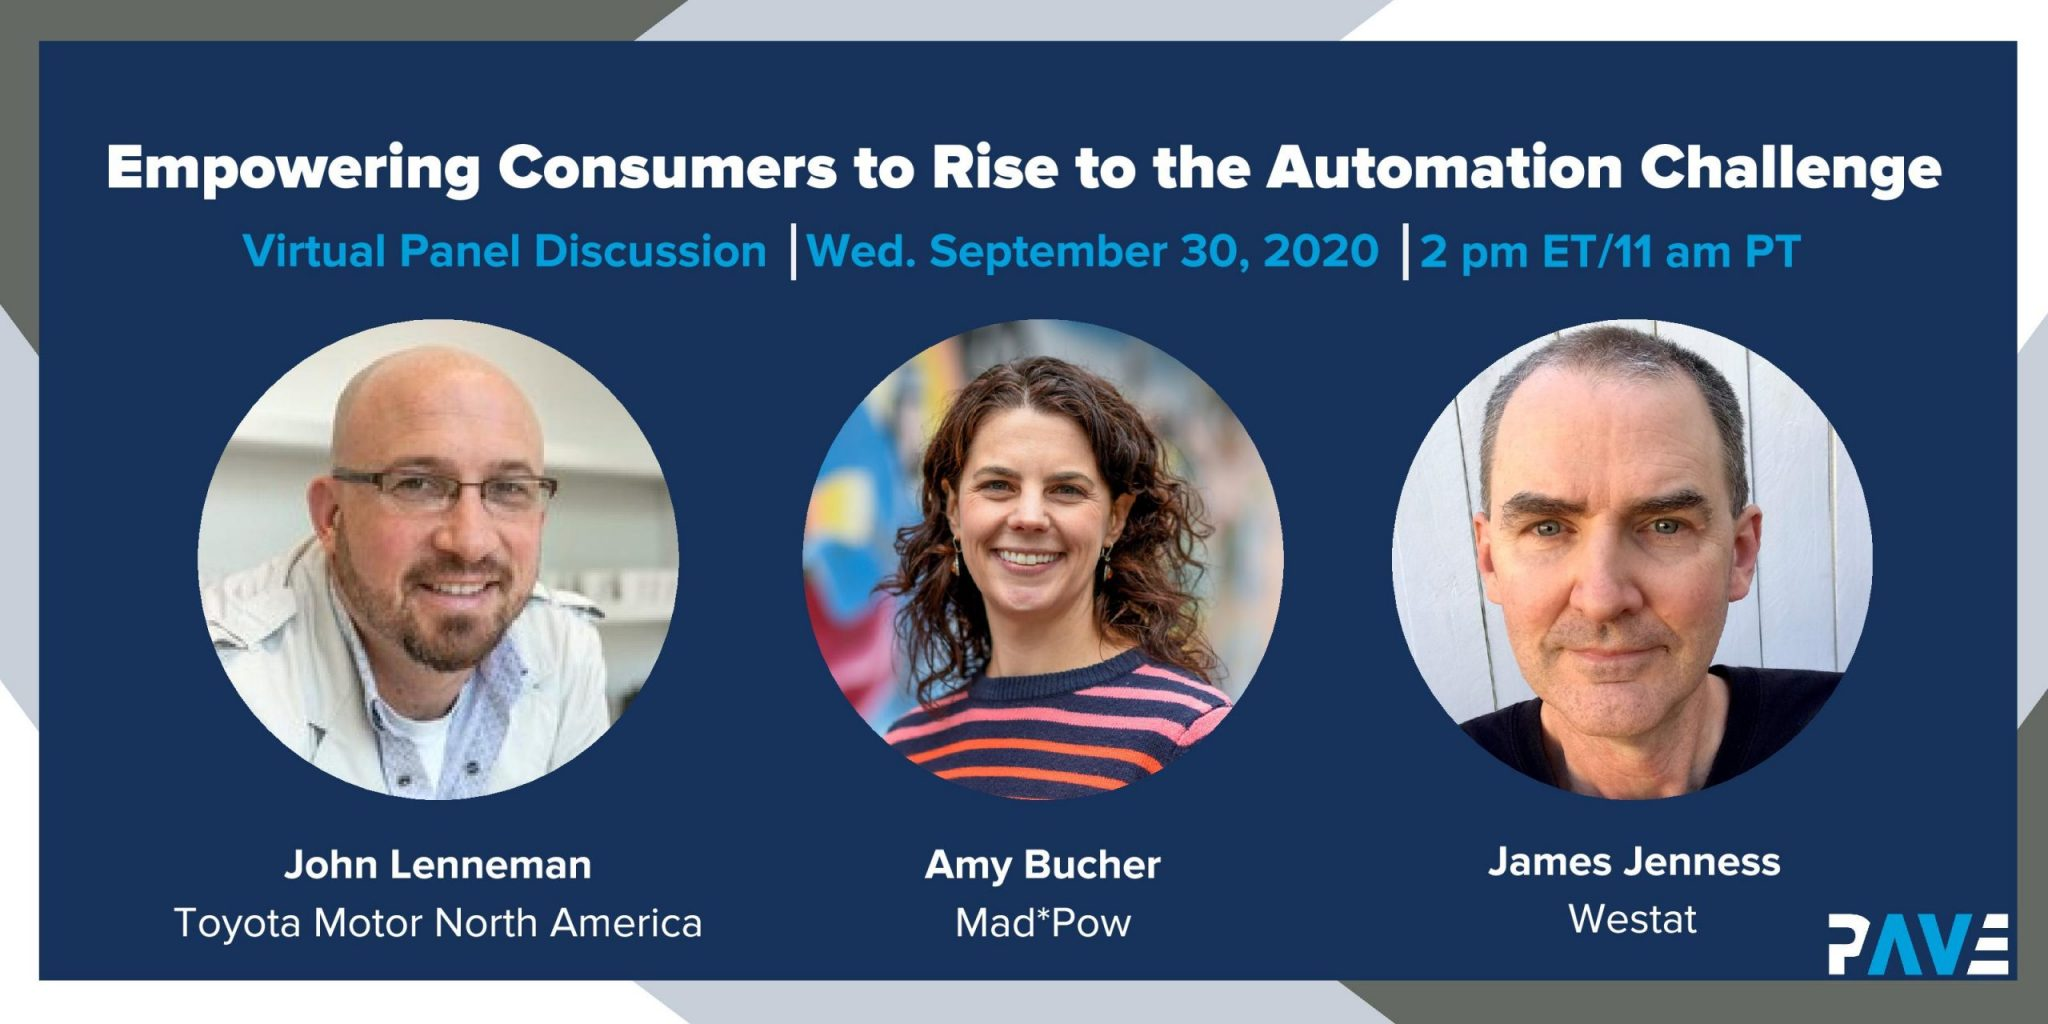 Empowering Consumers to Rise to the Automation Challenge